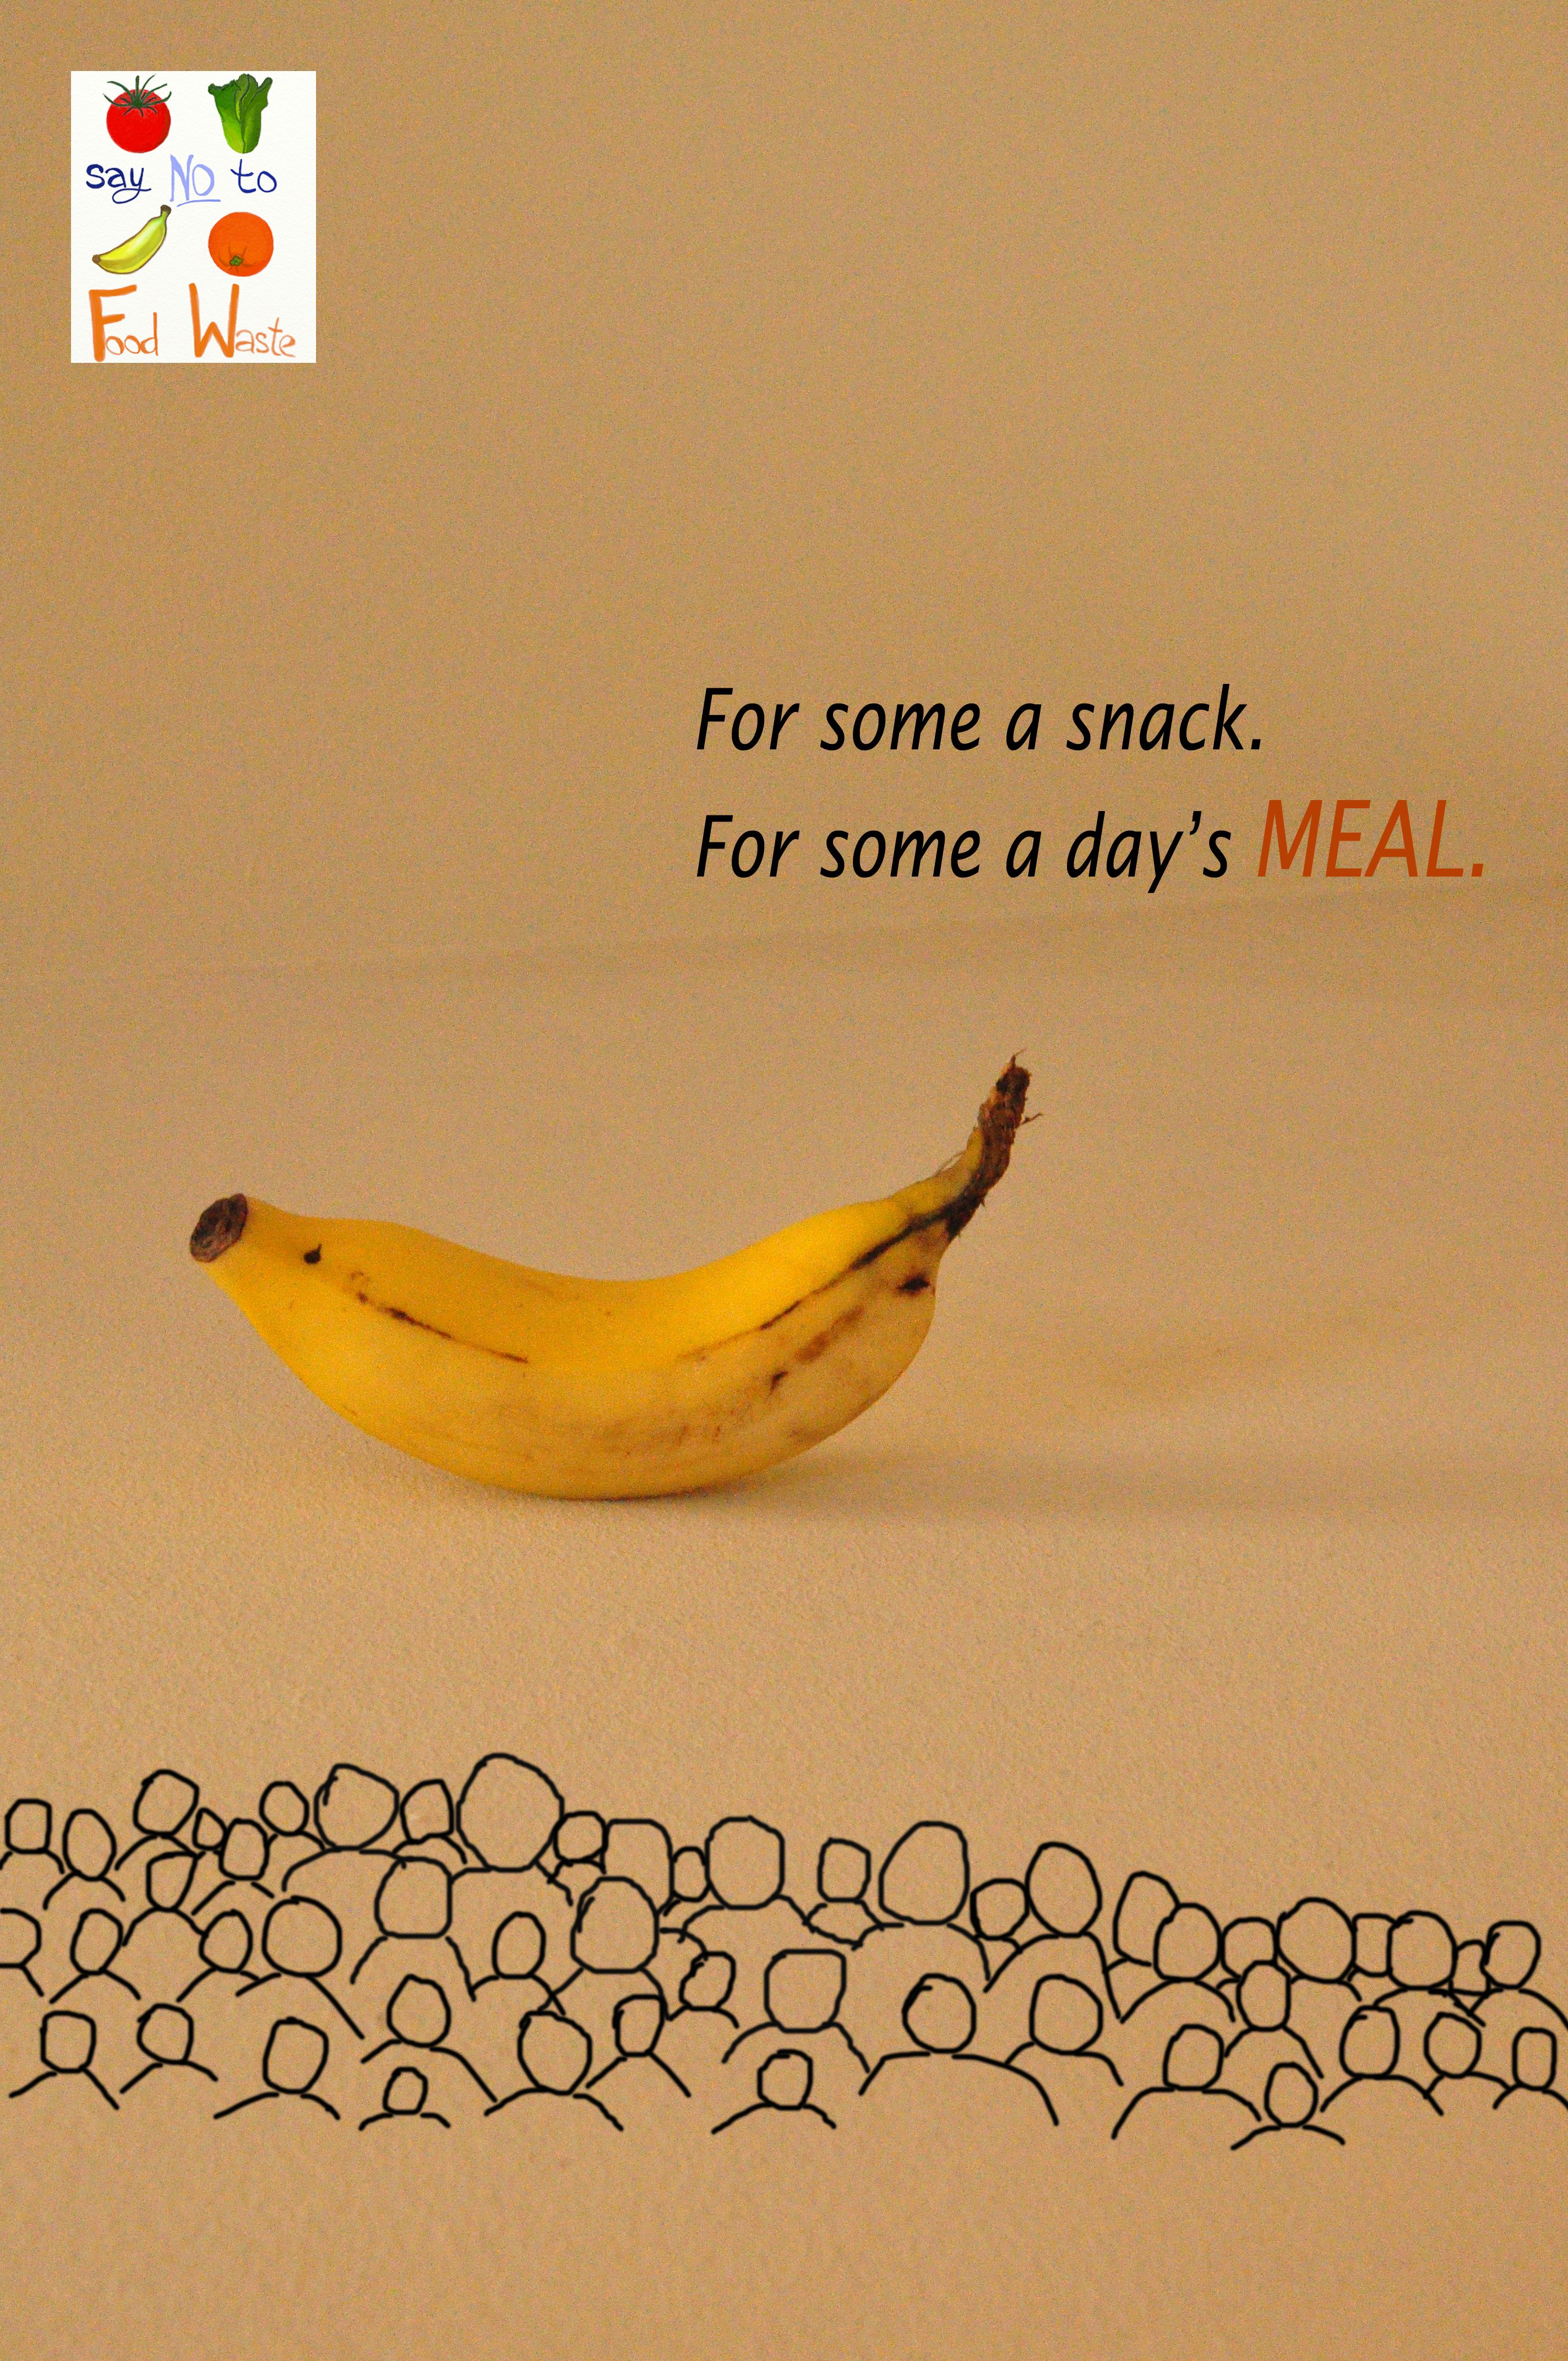 Your Snack Could Be A Meal For Some Food Waste Food Family Christmas Party Games